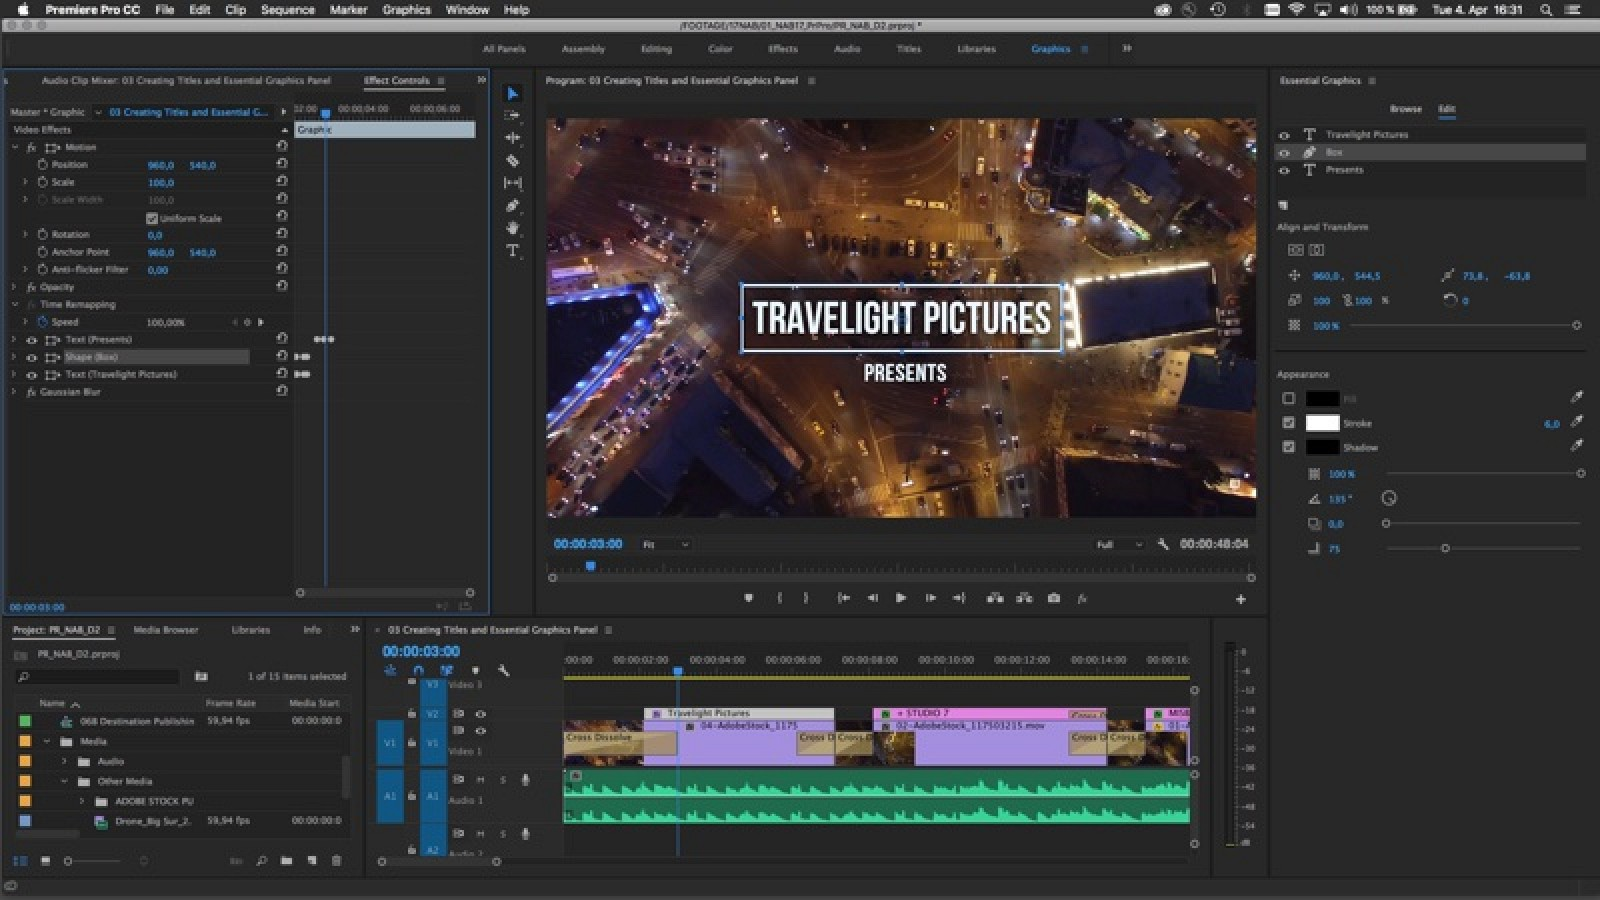 Adobe premiere photo montage templates Free After Effects Templates - RocketStock